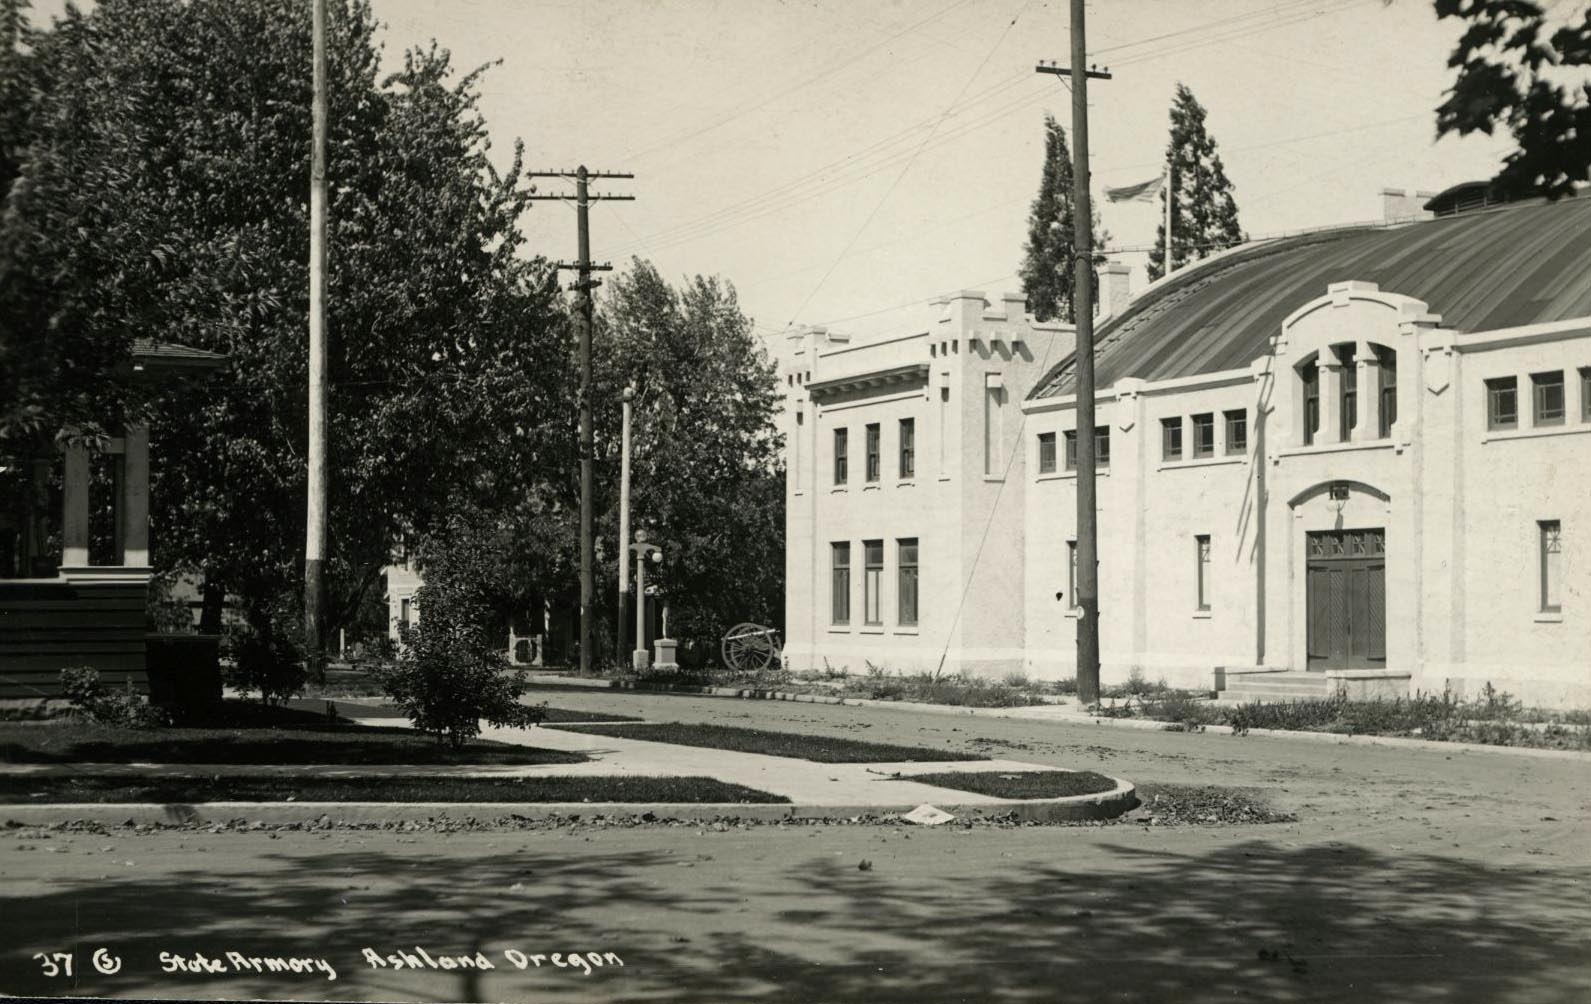 Armory in Ashland, Oregon, 1916